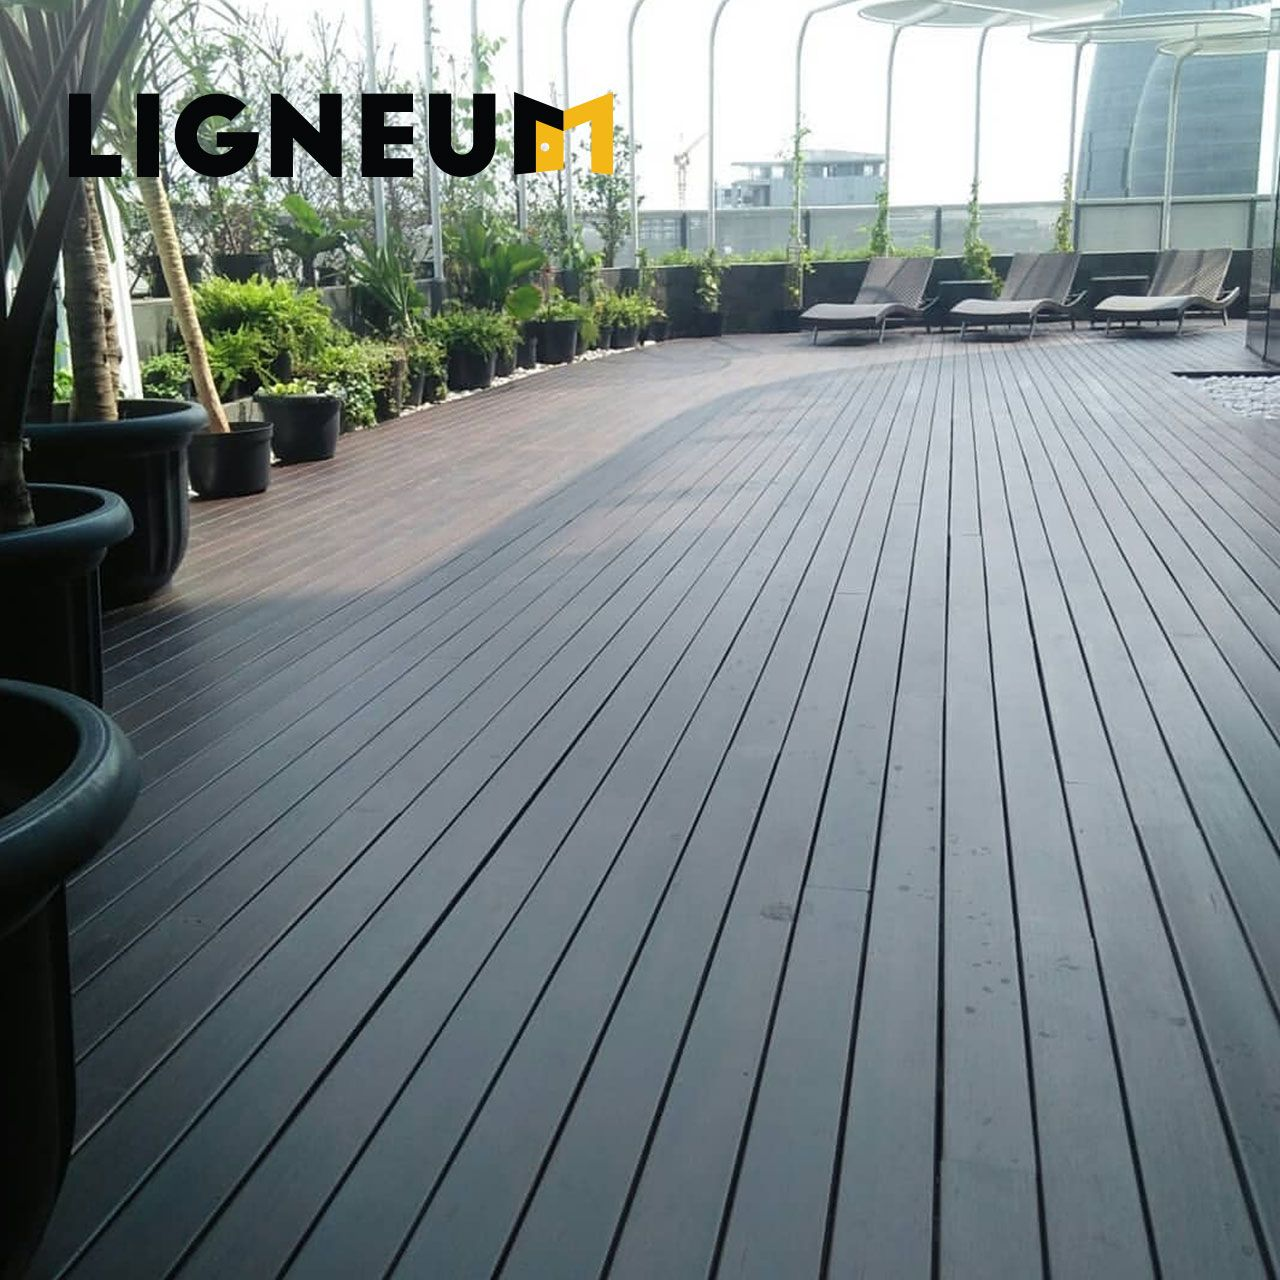 Try Ligneum Decking And Flooring Calculator And Get A Better Understanding Of The Quantity And Cost Of Materials You Ll Flooring Calculator Merbau Decking Deck